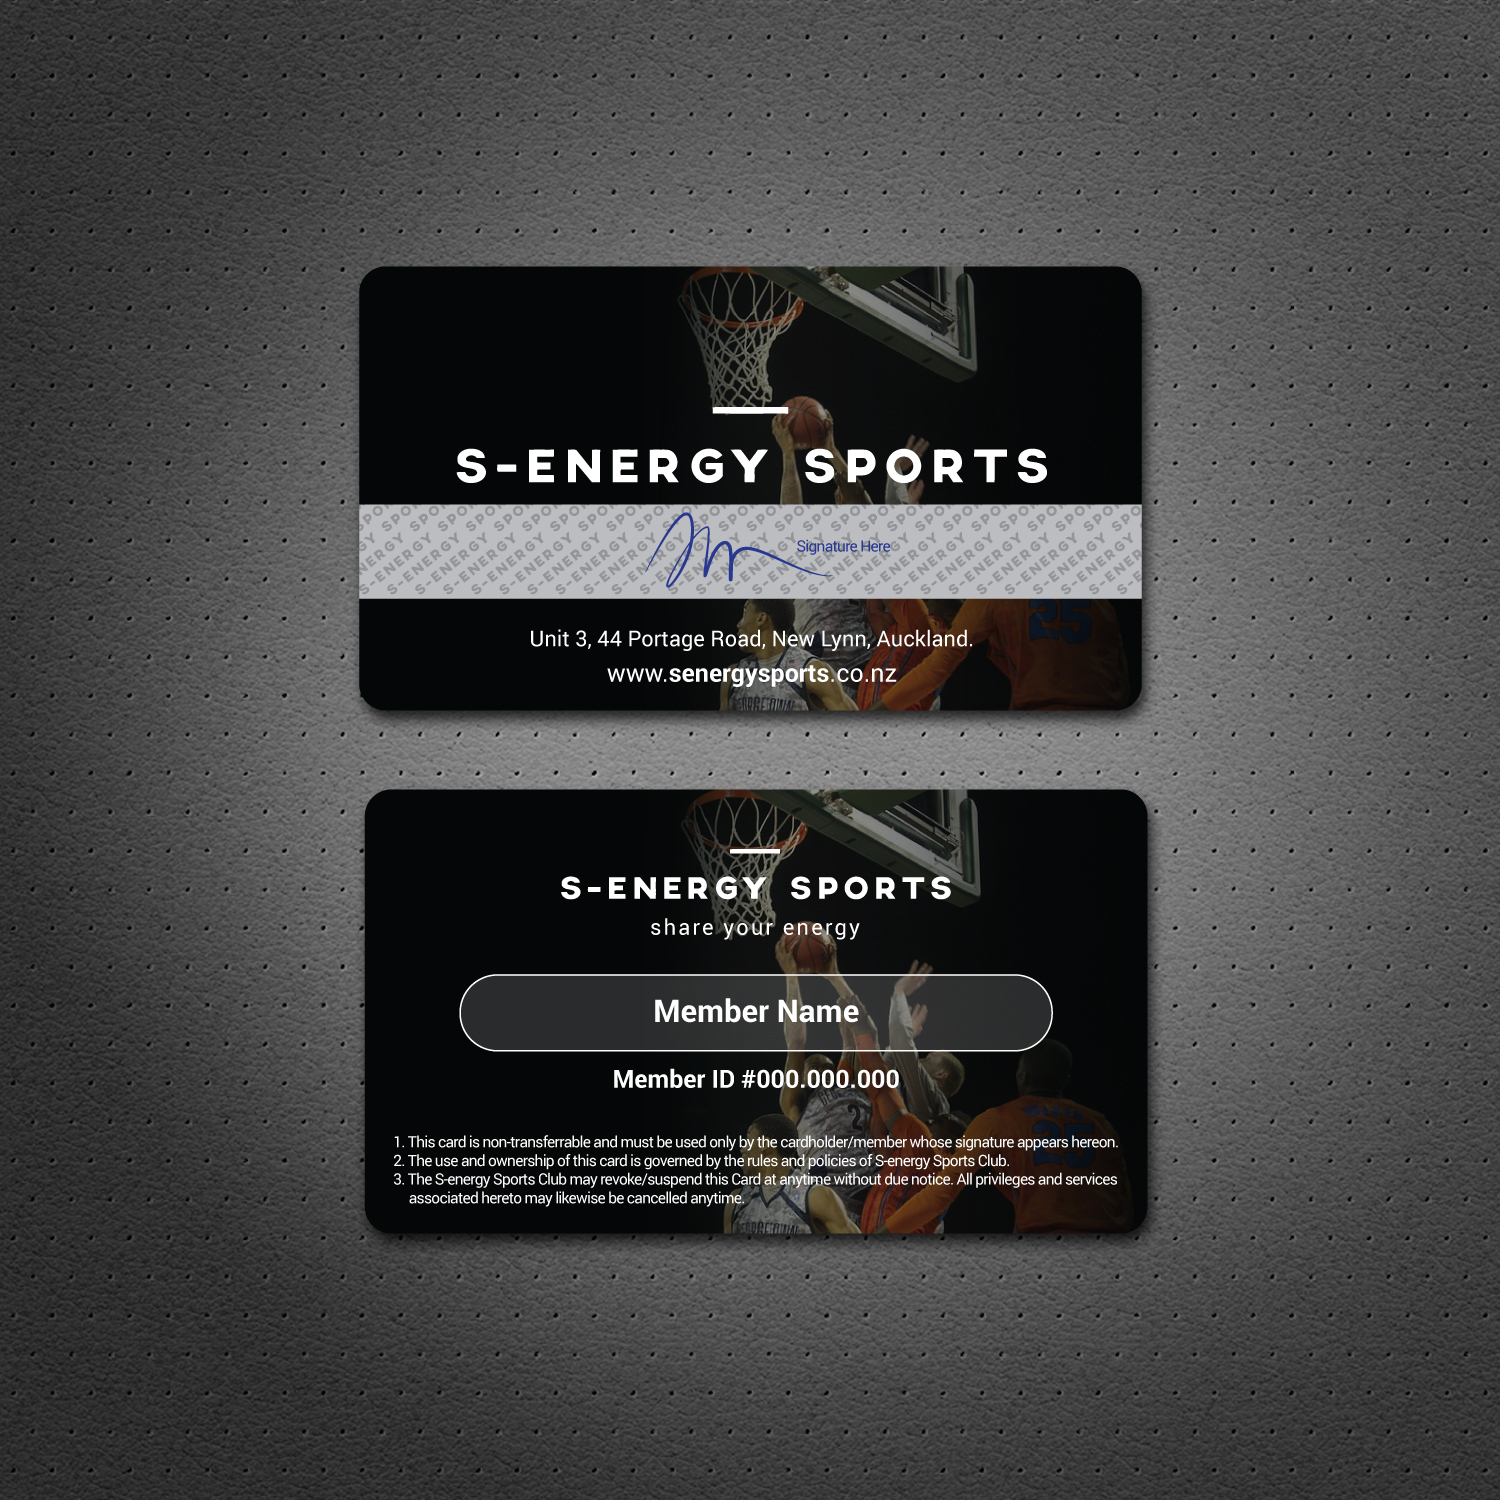 Modern masculine recreation business card design for s energy business card design by dezero for s energy sports design 12501341 reheart Image collections